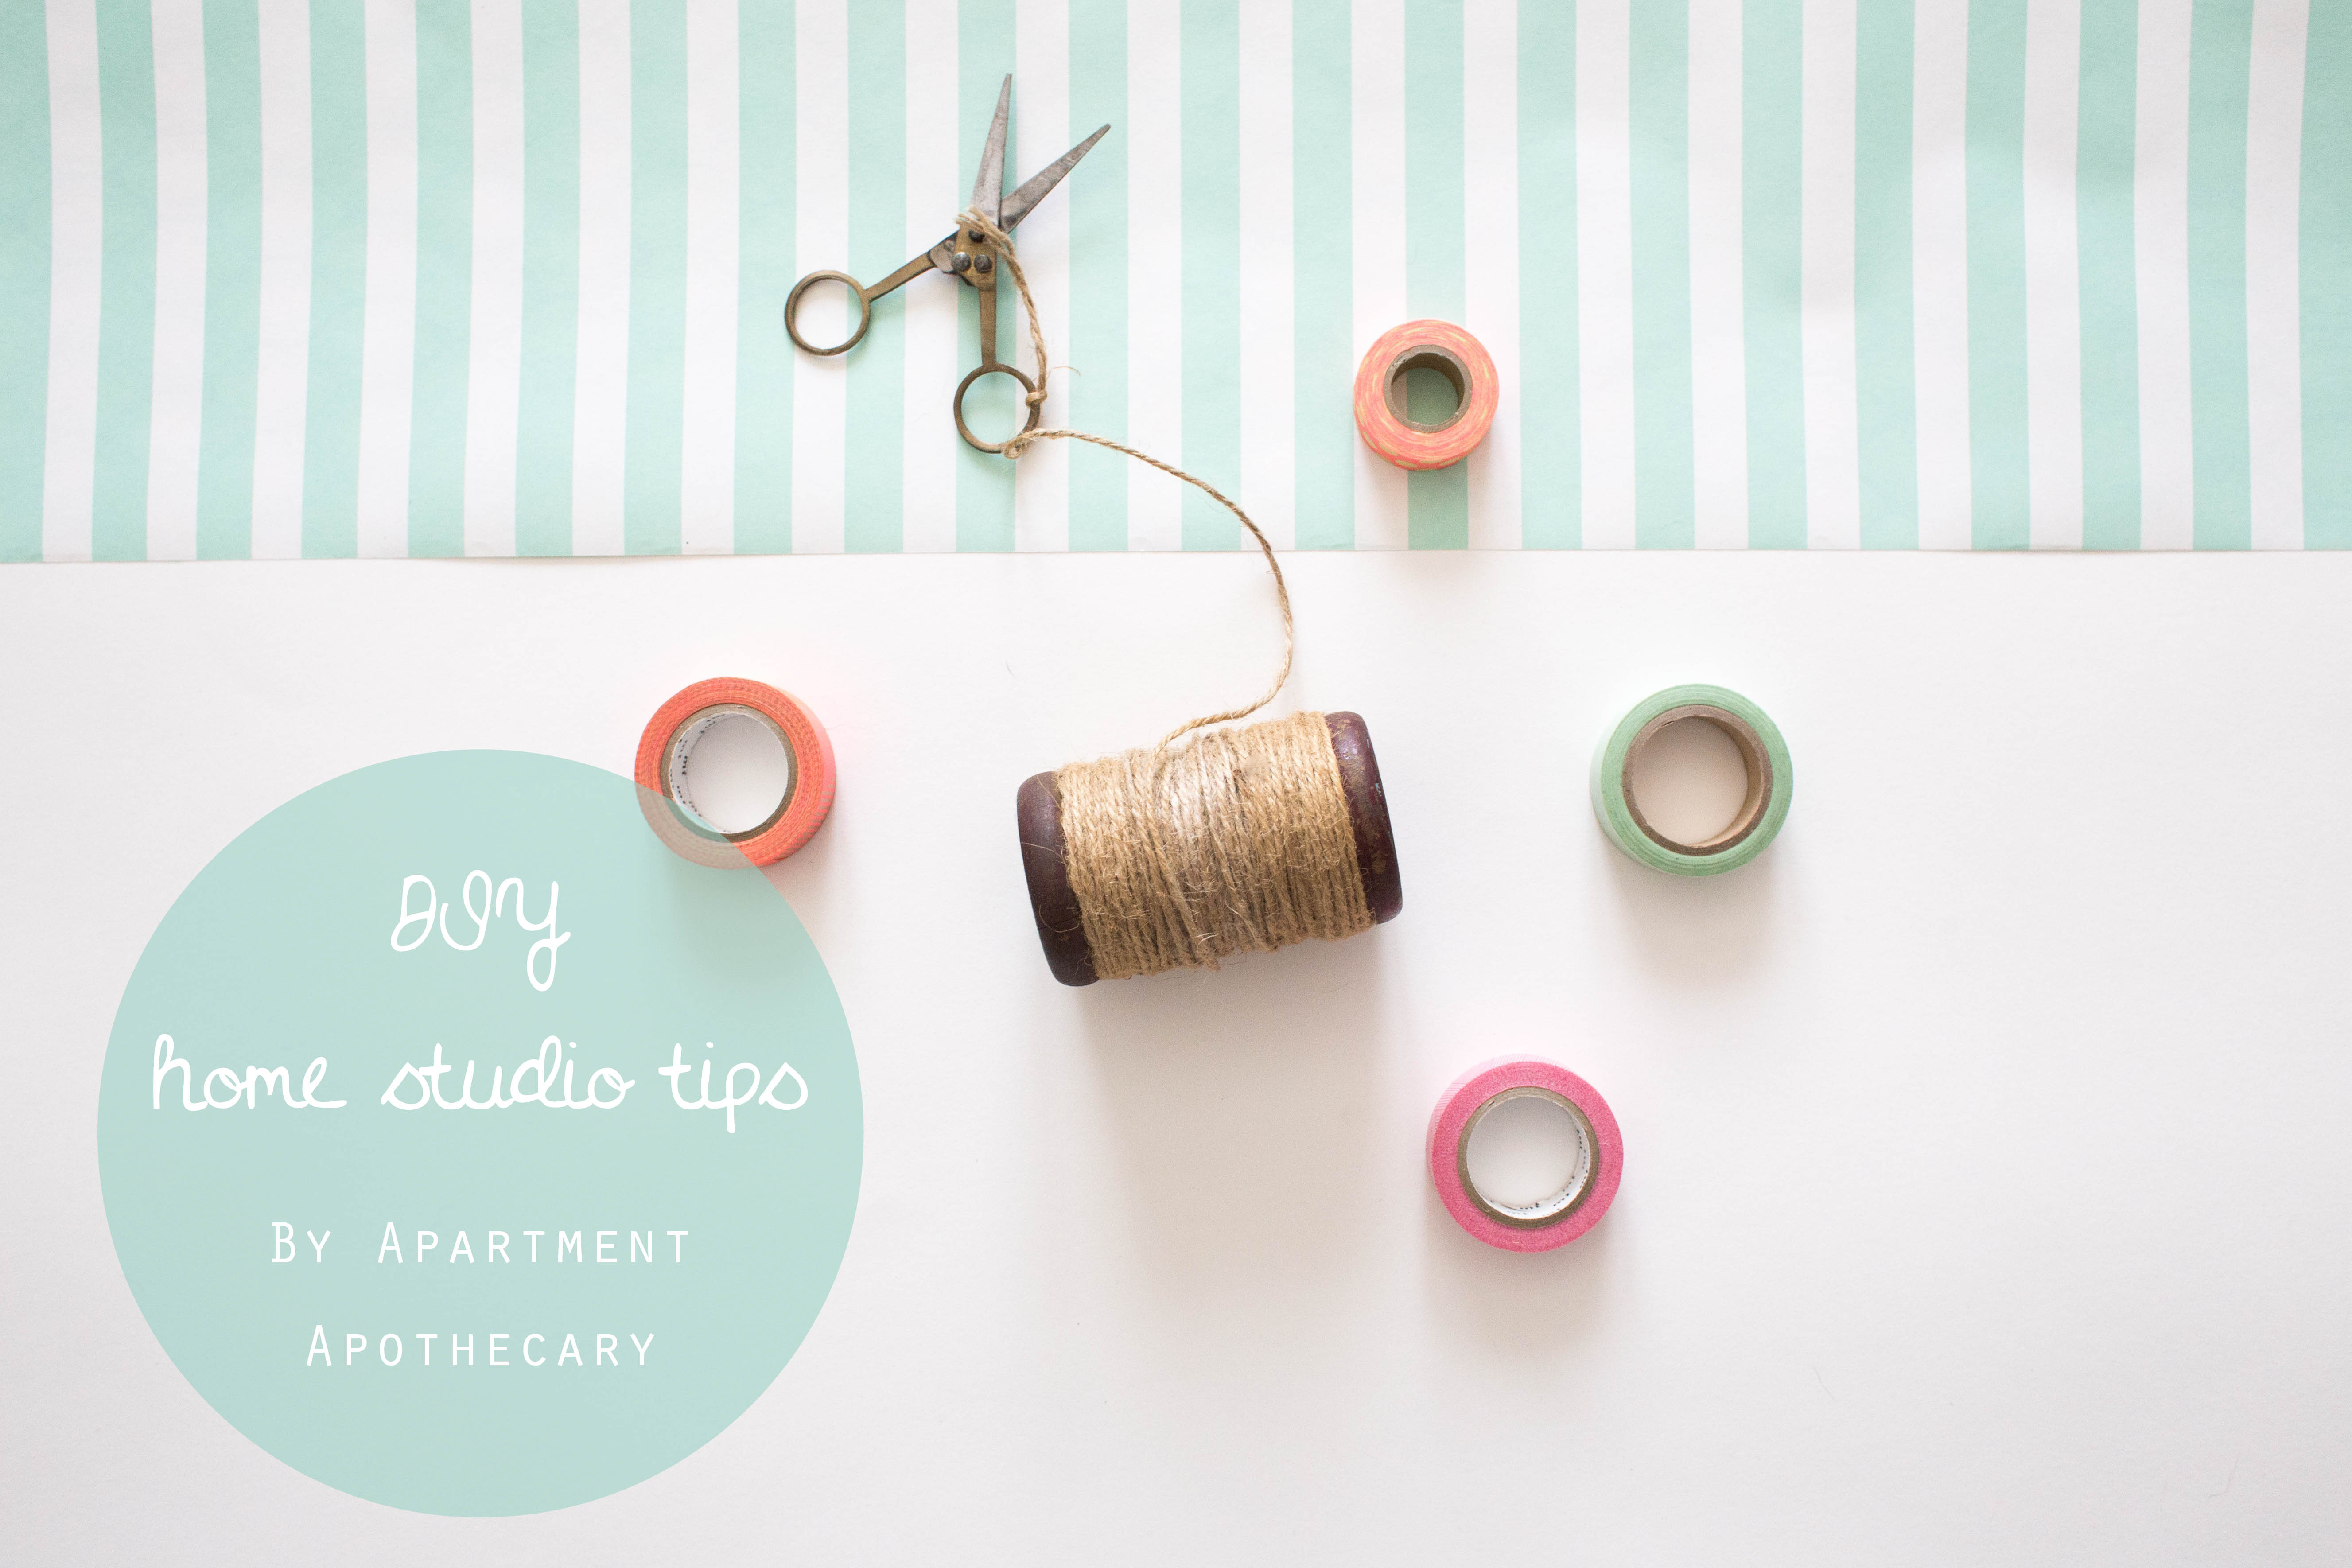 DIY home studio for blog posts | Quick fix home studio tips | Taking photographs for blog posts | Apartment Apothecary